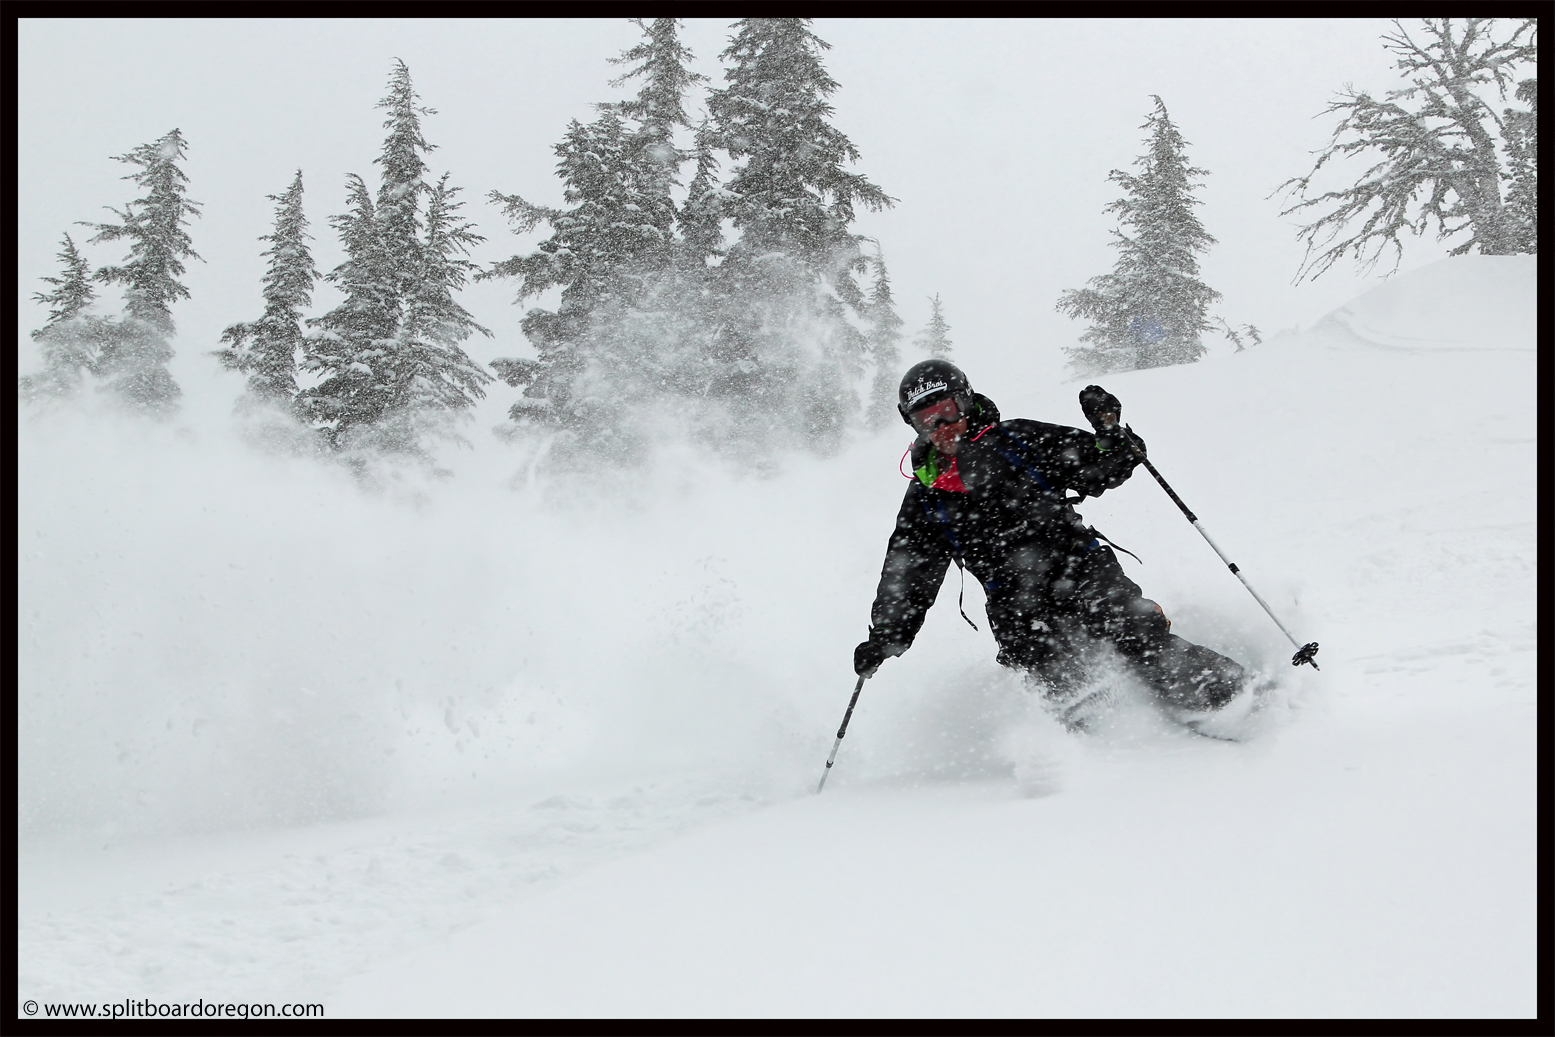 Andy enjoying the fresh pow!